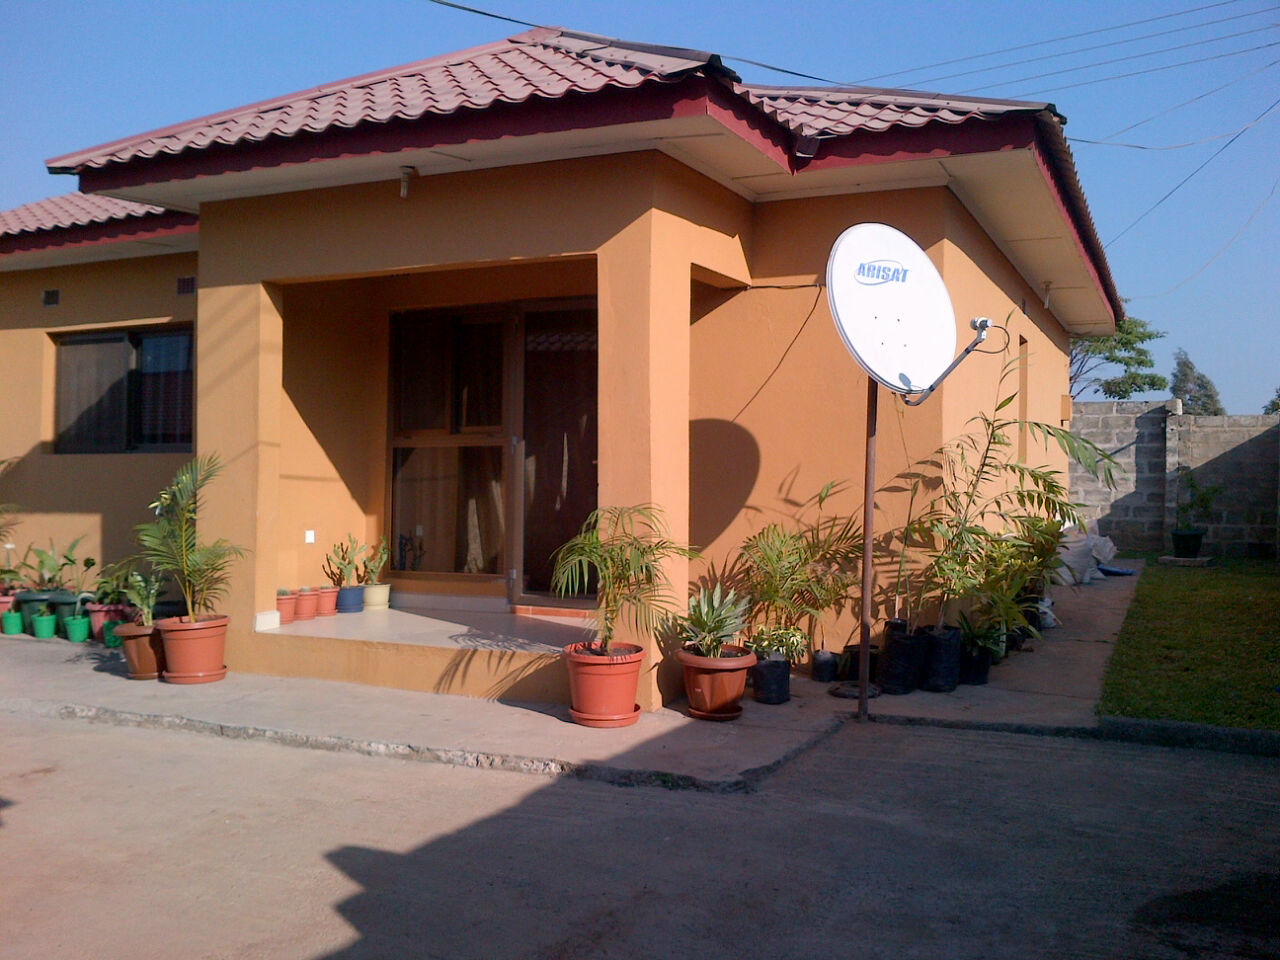 2 Bedroom House for Rent in Ndola